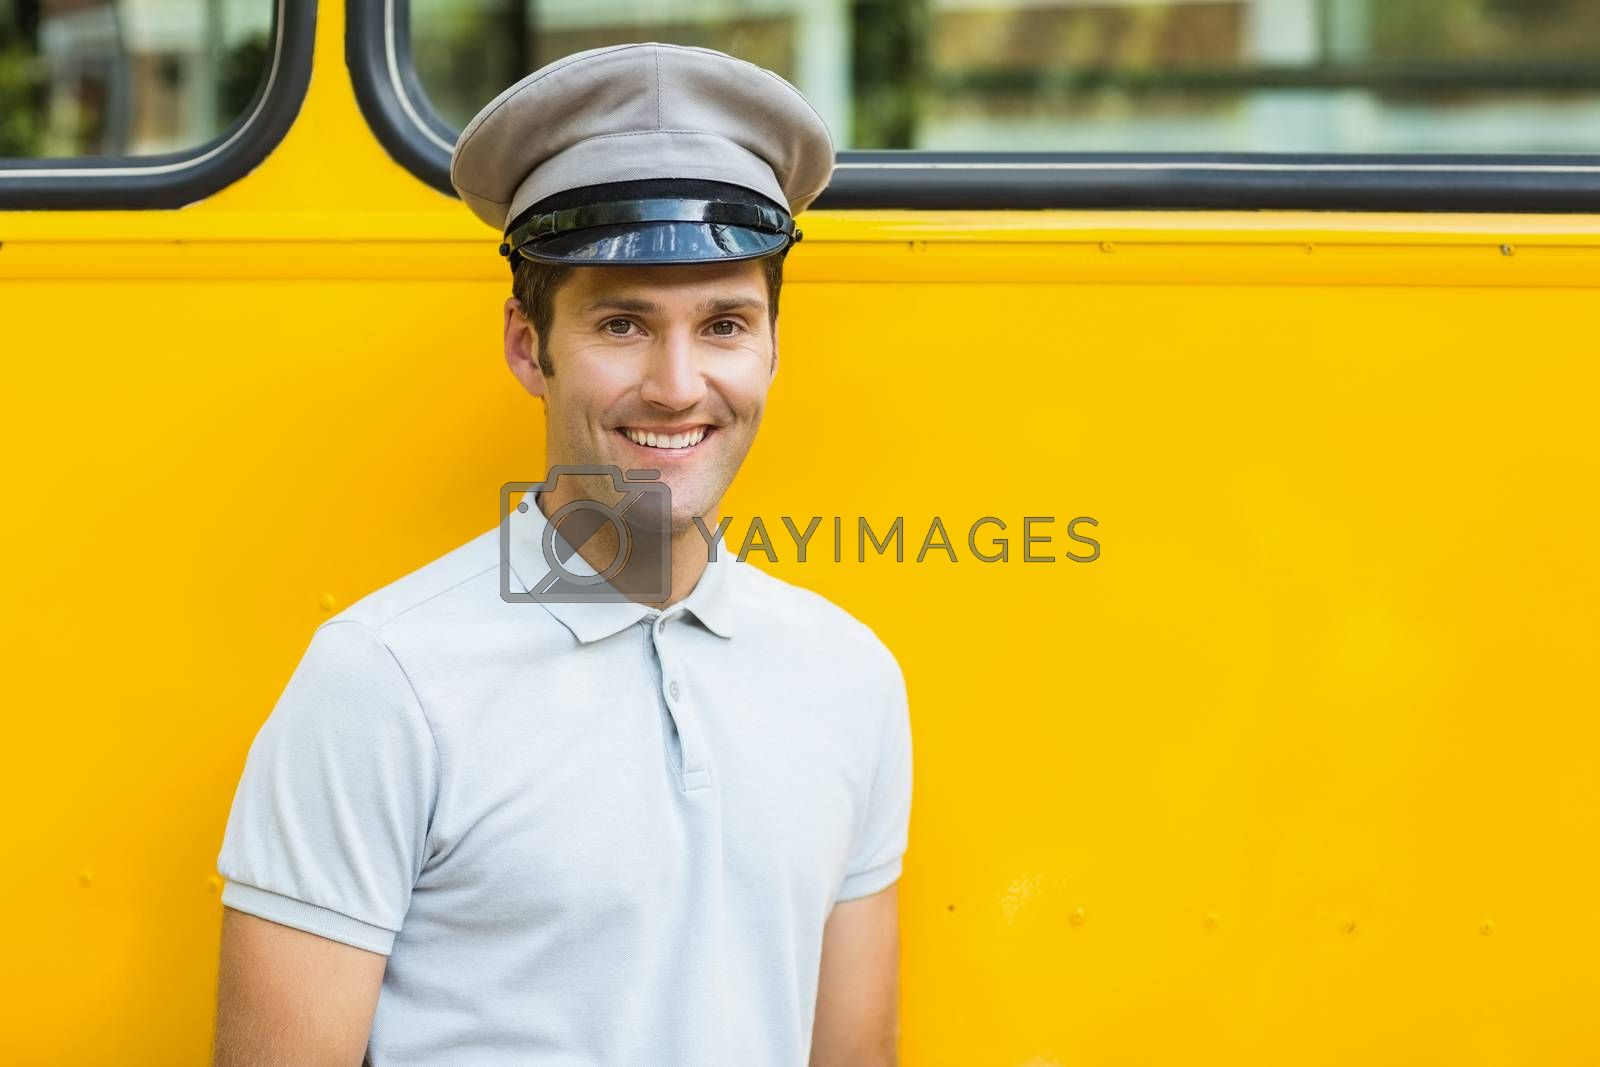 Bus driver smiling in front of bus by Wavebreakmedia